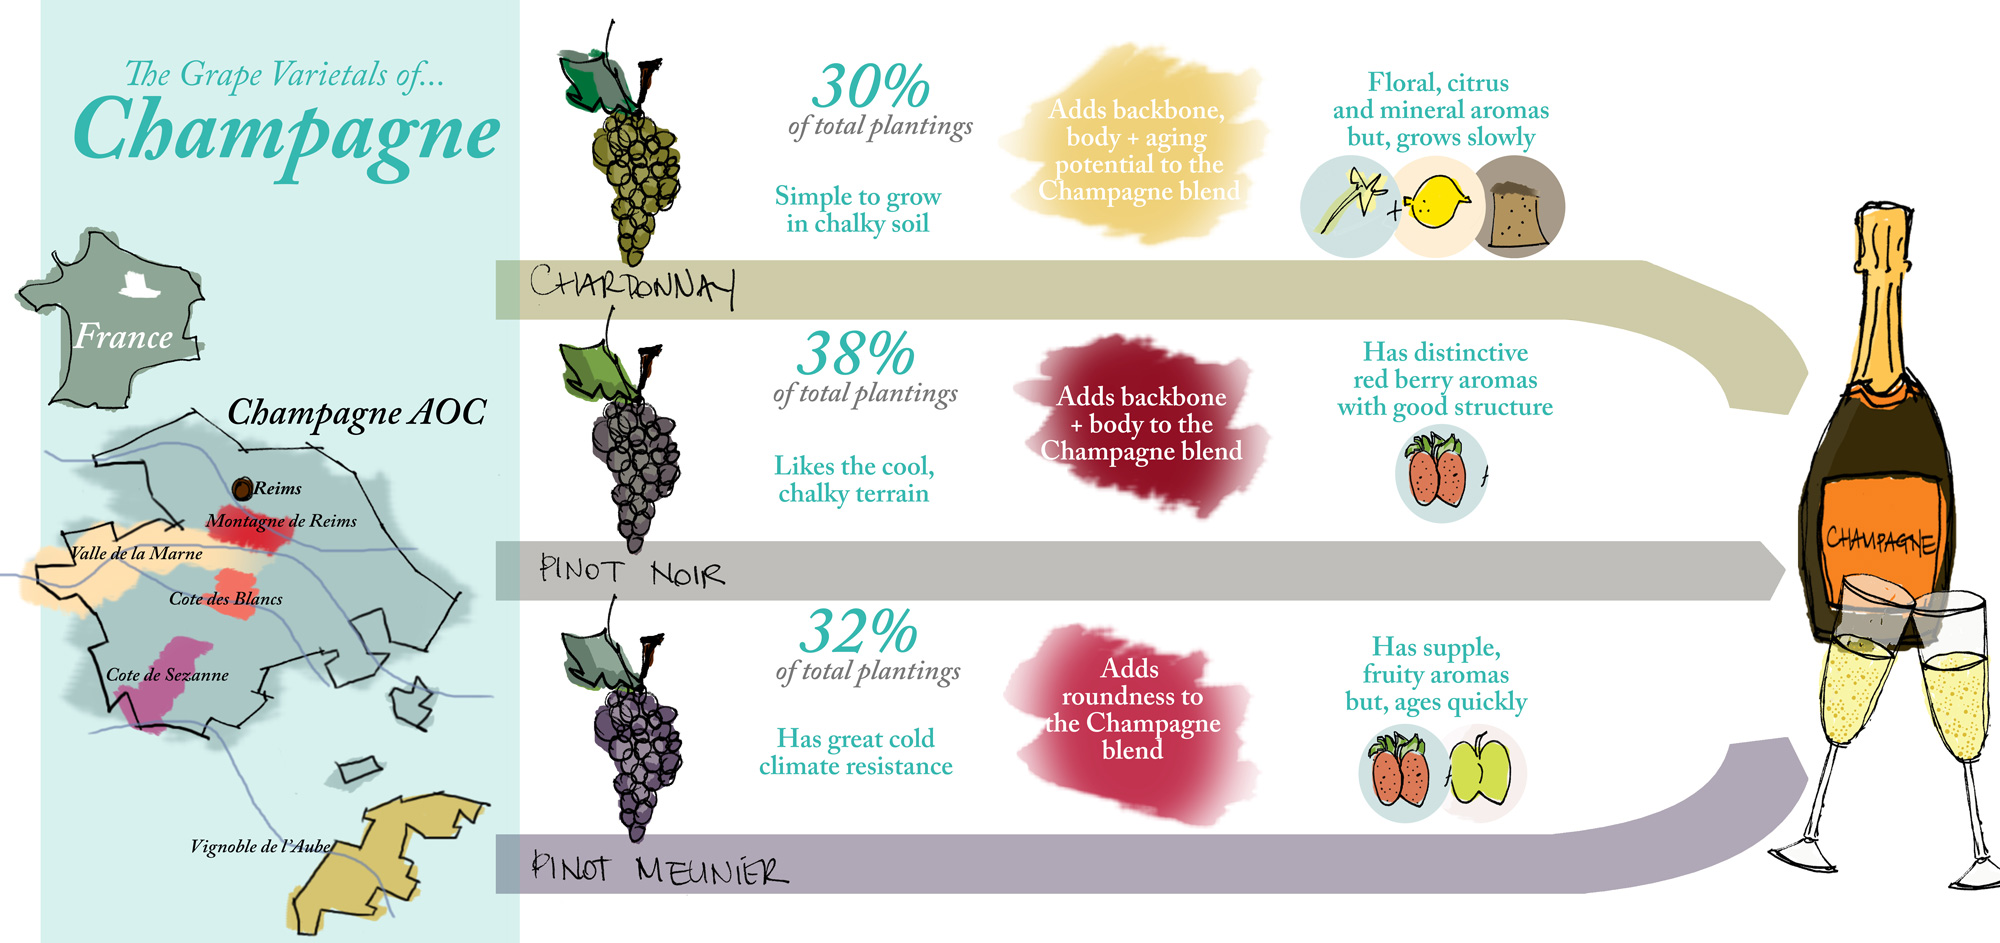 infographic-grapes-of-champagne